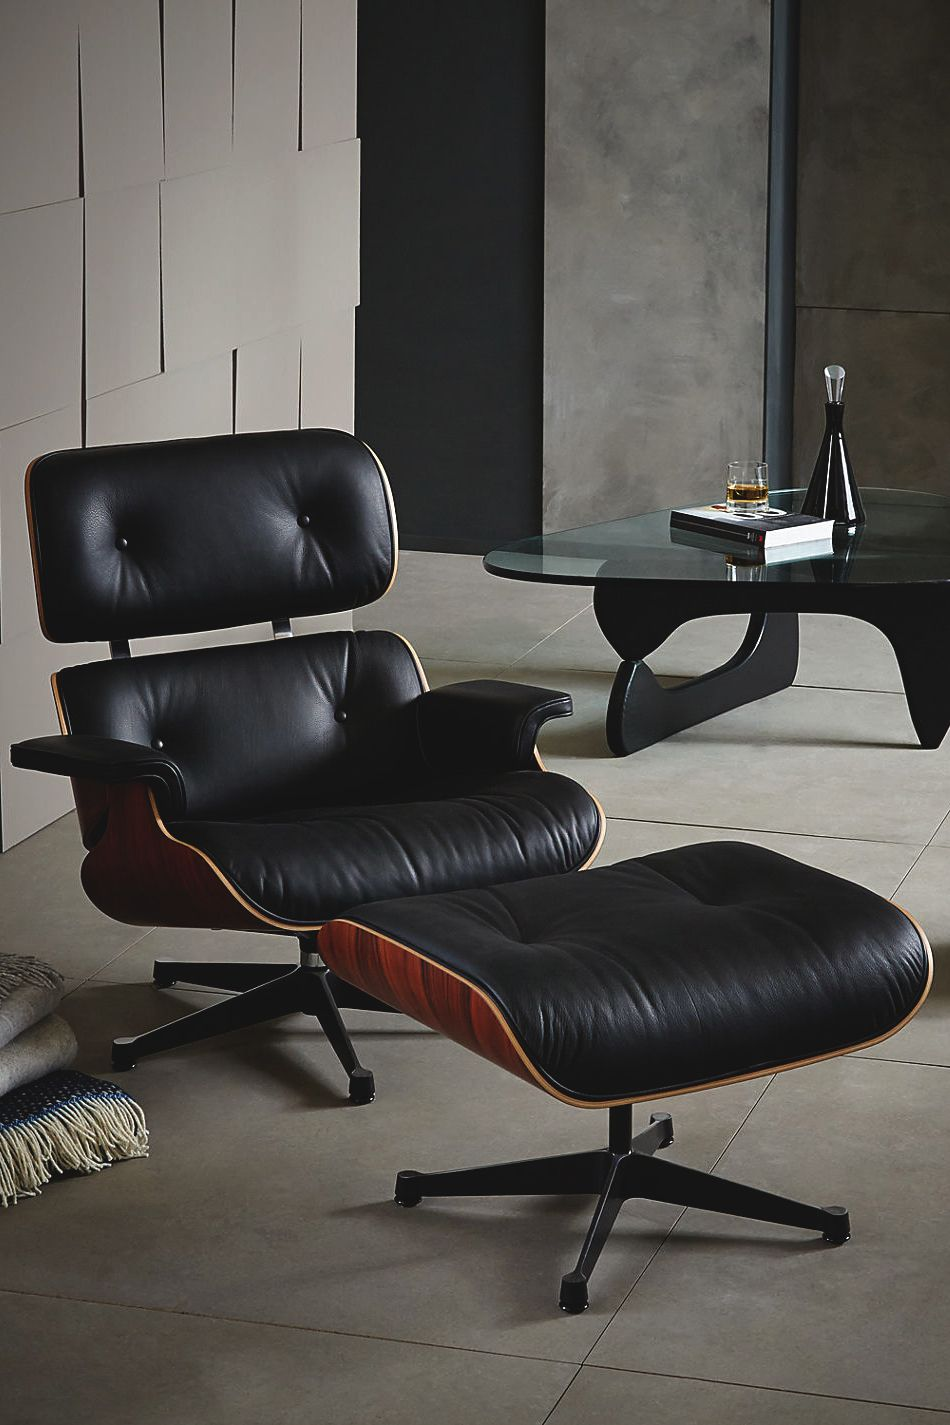 Buy Vitra Eames Lounge Armchair + Ottoman, Black/Pallisander from our Sofas  range at John Lewis. Free Delivery on orders over